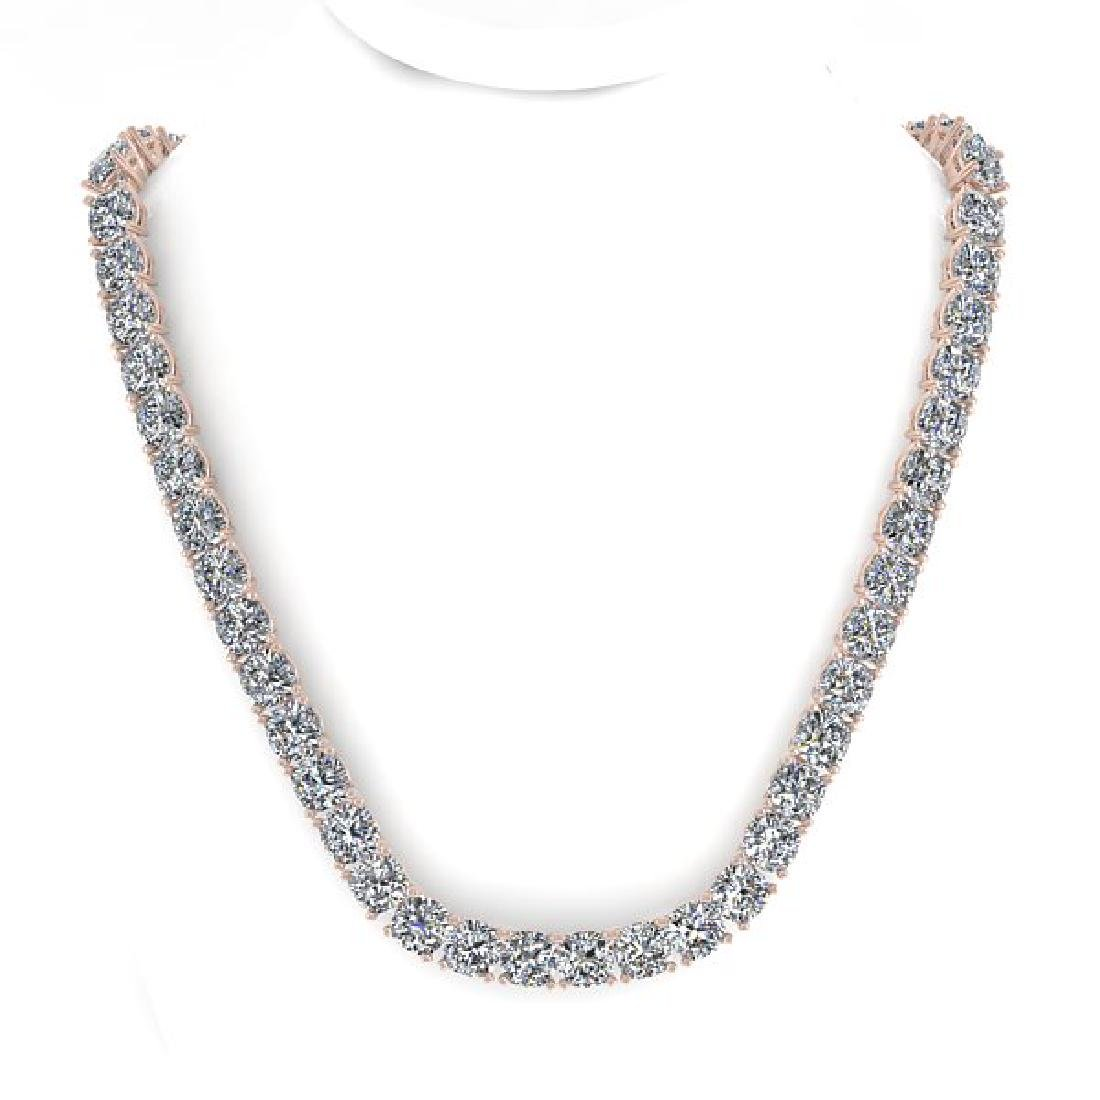 35 CTW Cushion Cut Certified SI Diamond Necklace 14K - 3